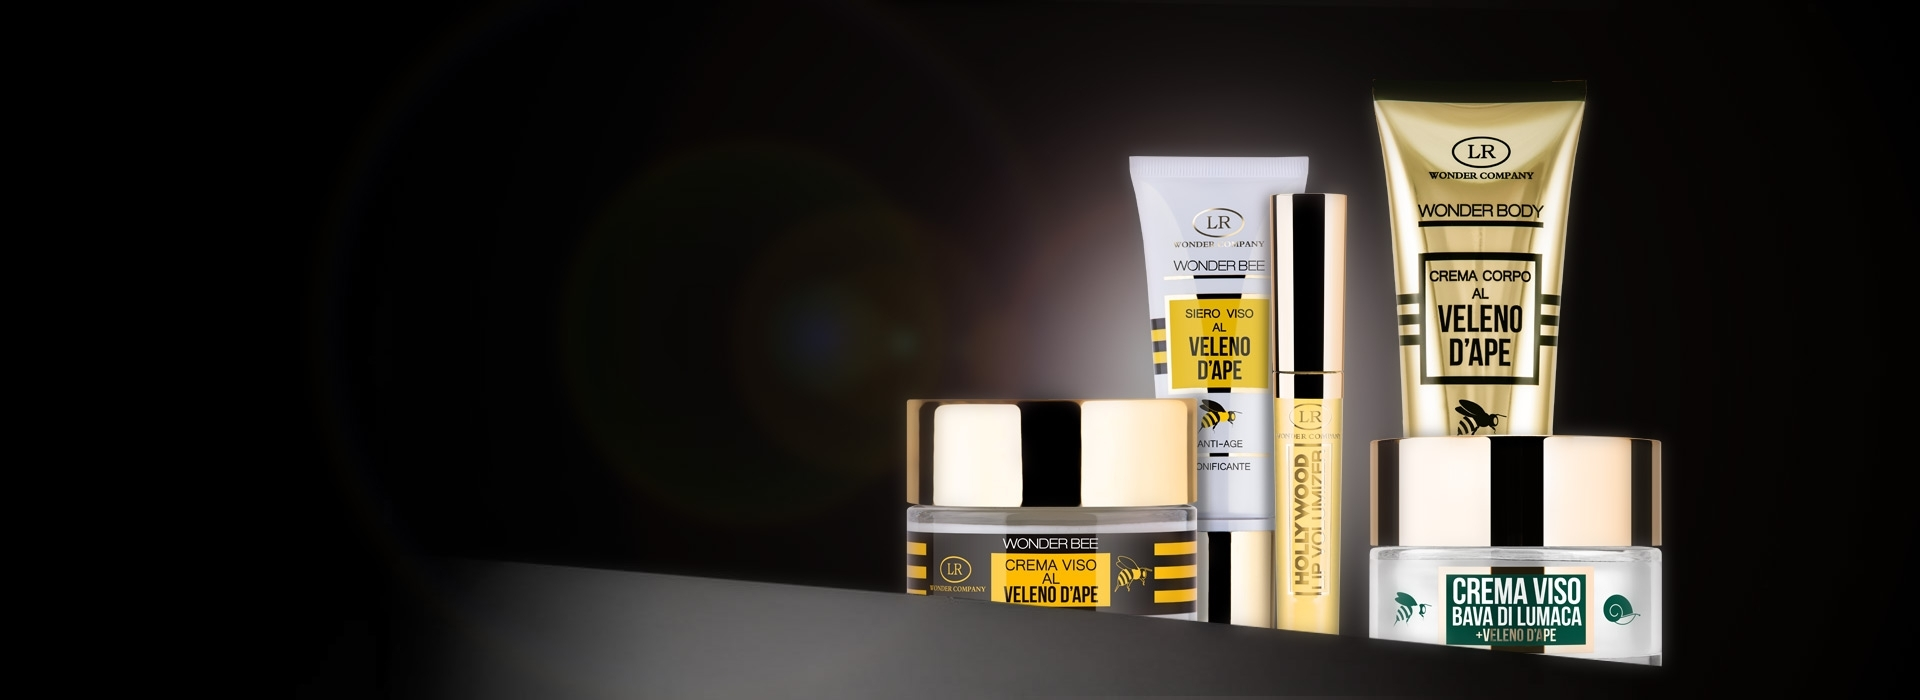 Bee Venom face and body creams LR Wonder Company, Wonder Body, Wonder Bee, Lip Volumizer